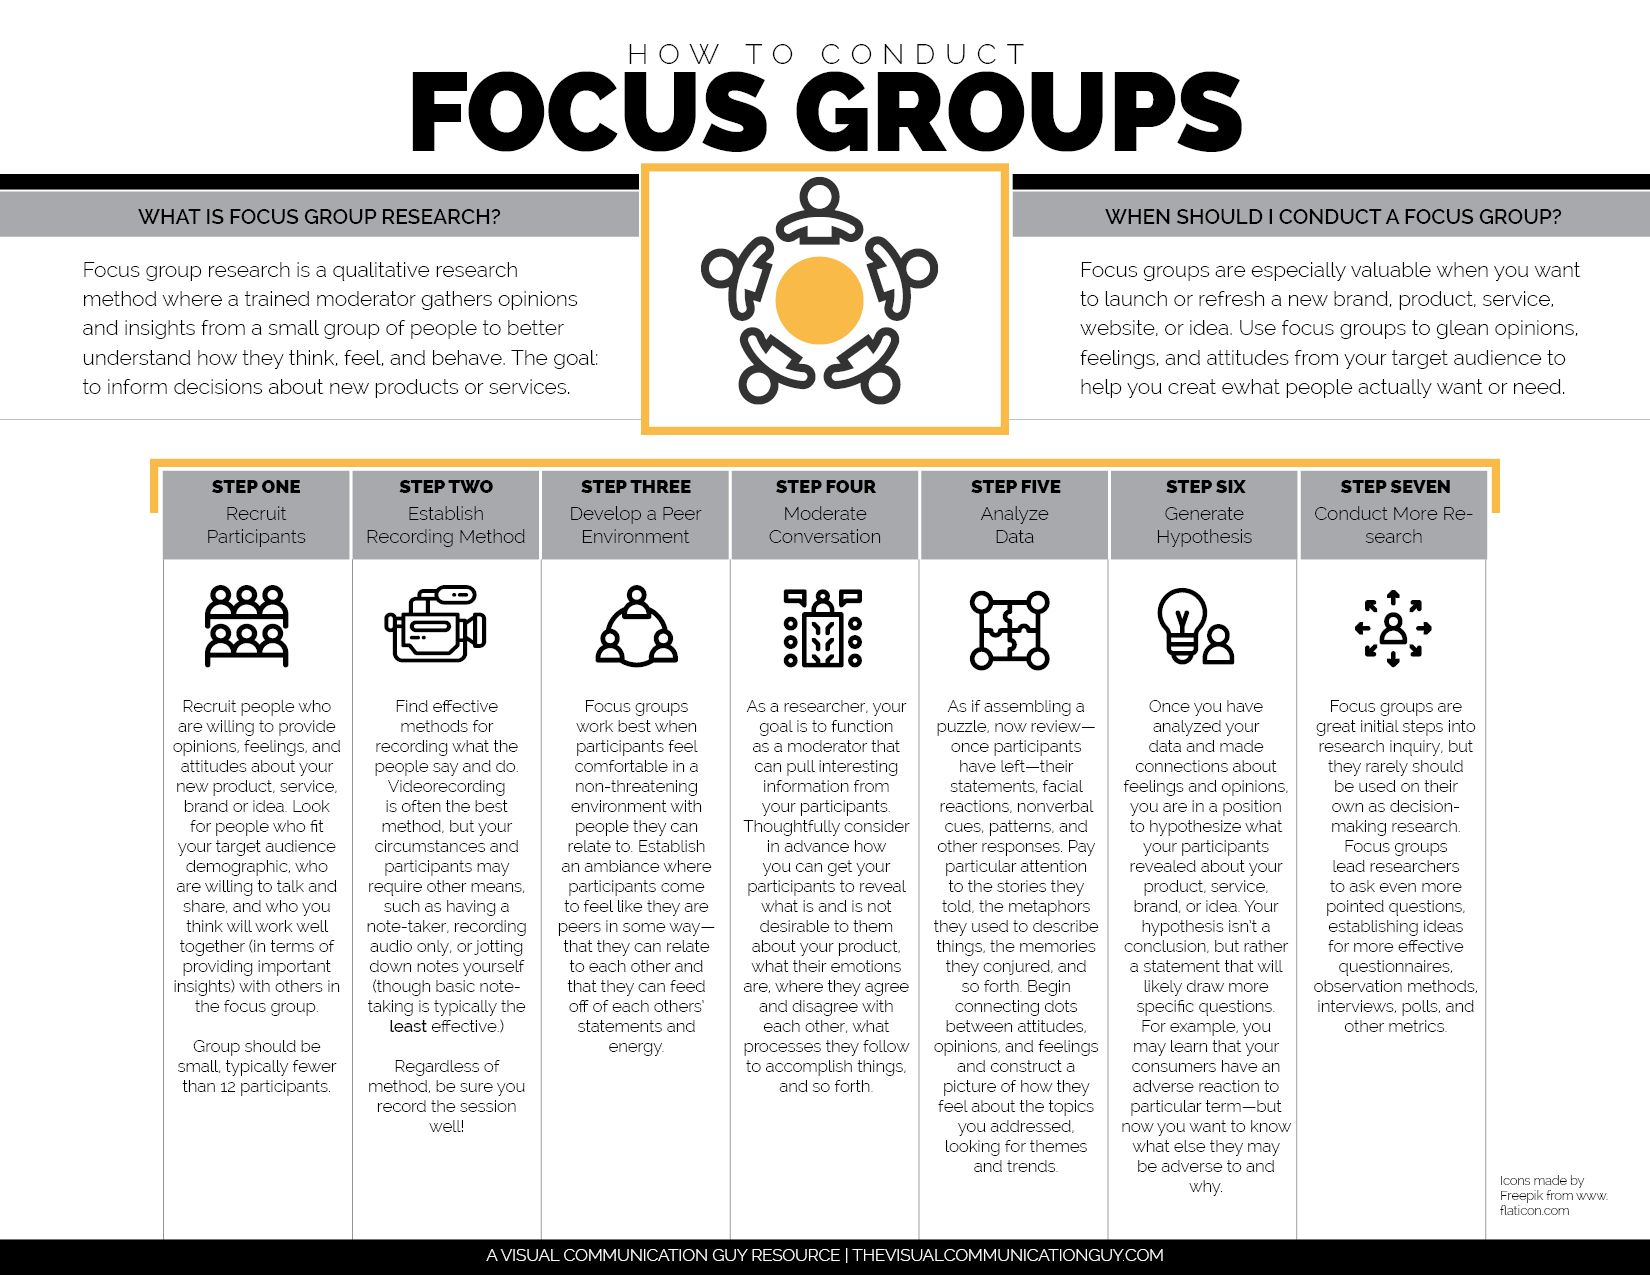 Focus Groups Are Useful Research Methods For Learning About